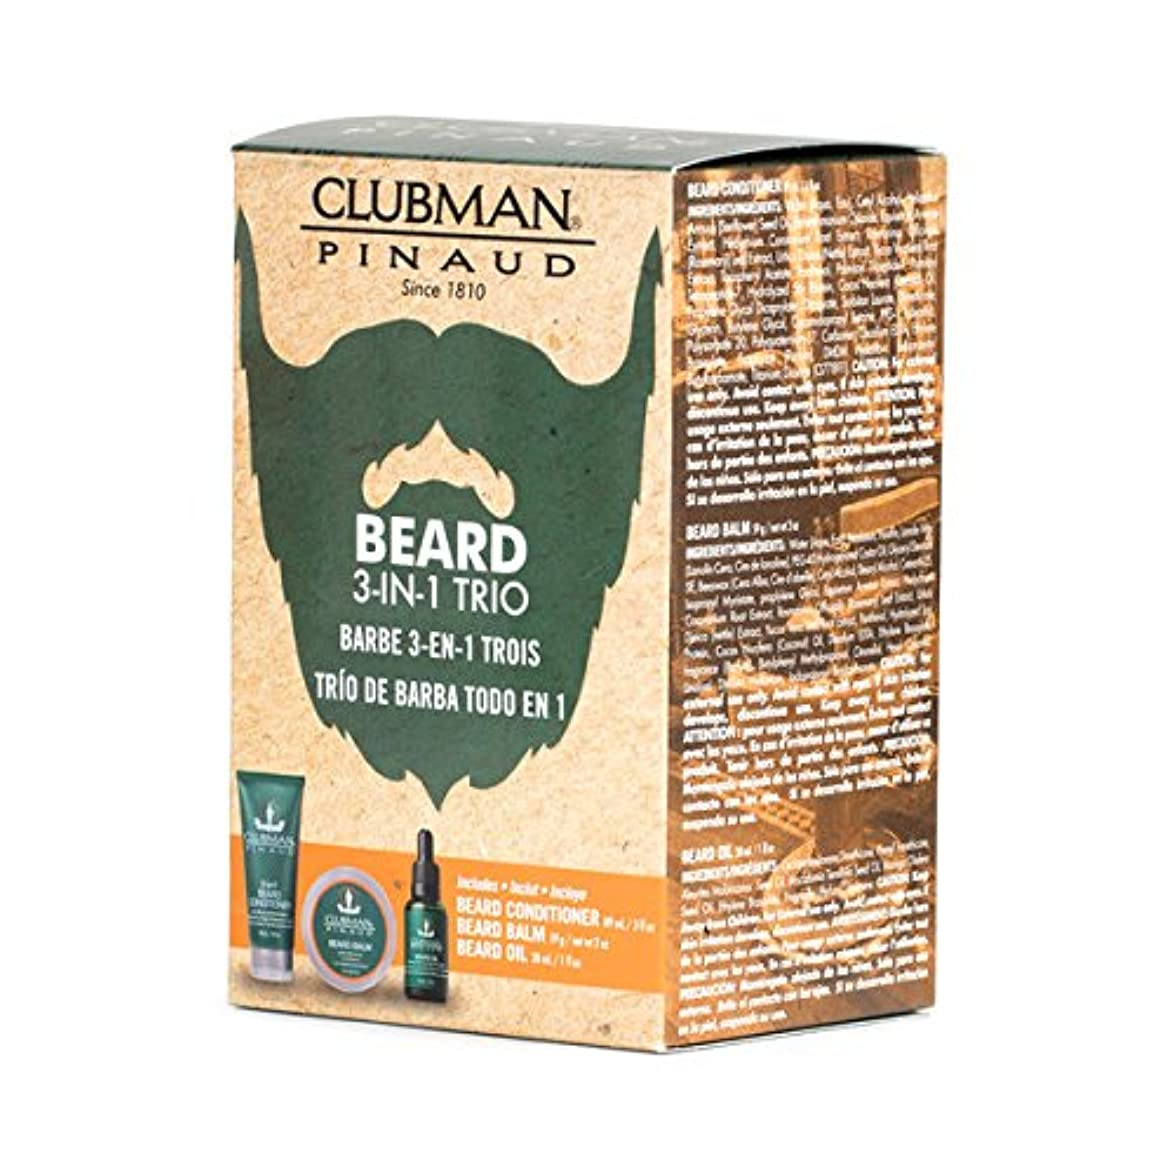 セラー複数恐怖(3 Pack) CLUBMAN Beard 3 in 1 Trio - Beard Balm, Oil and 2 in 1 Conditioner (並行輸入品)